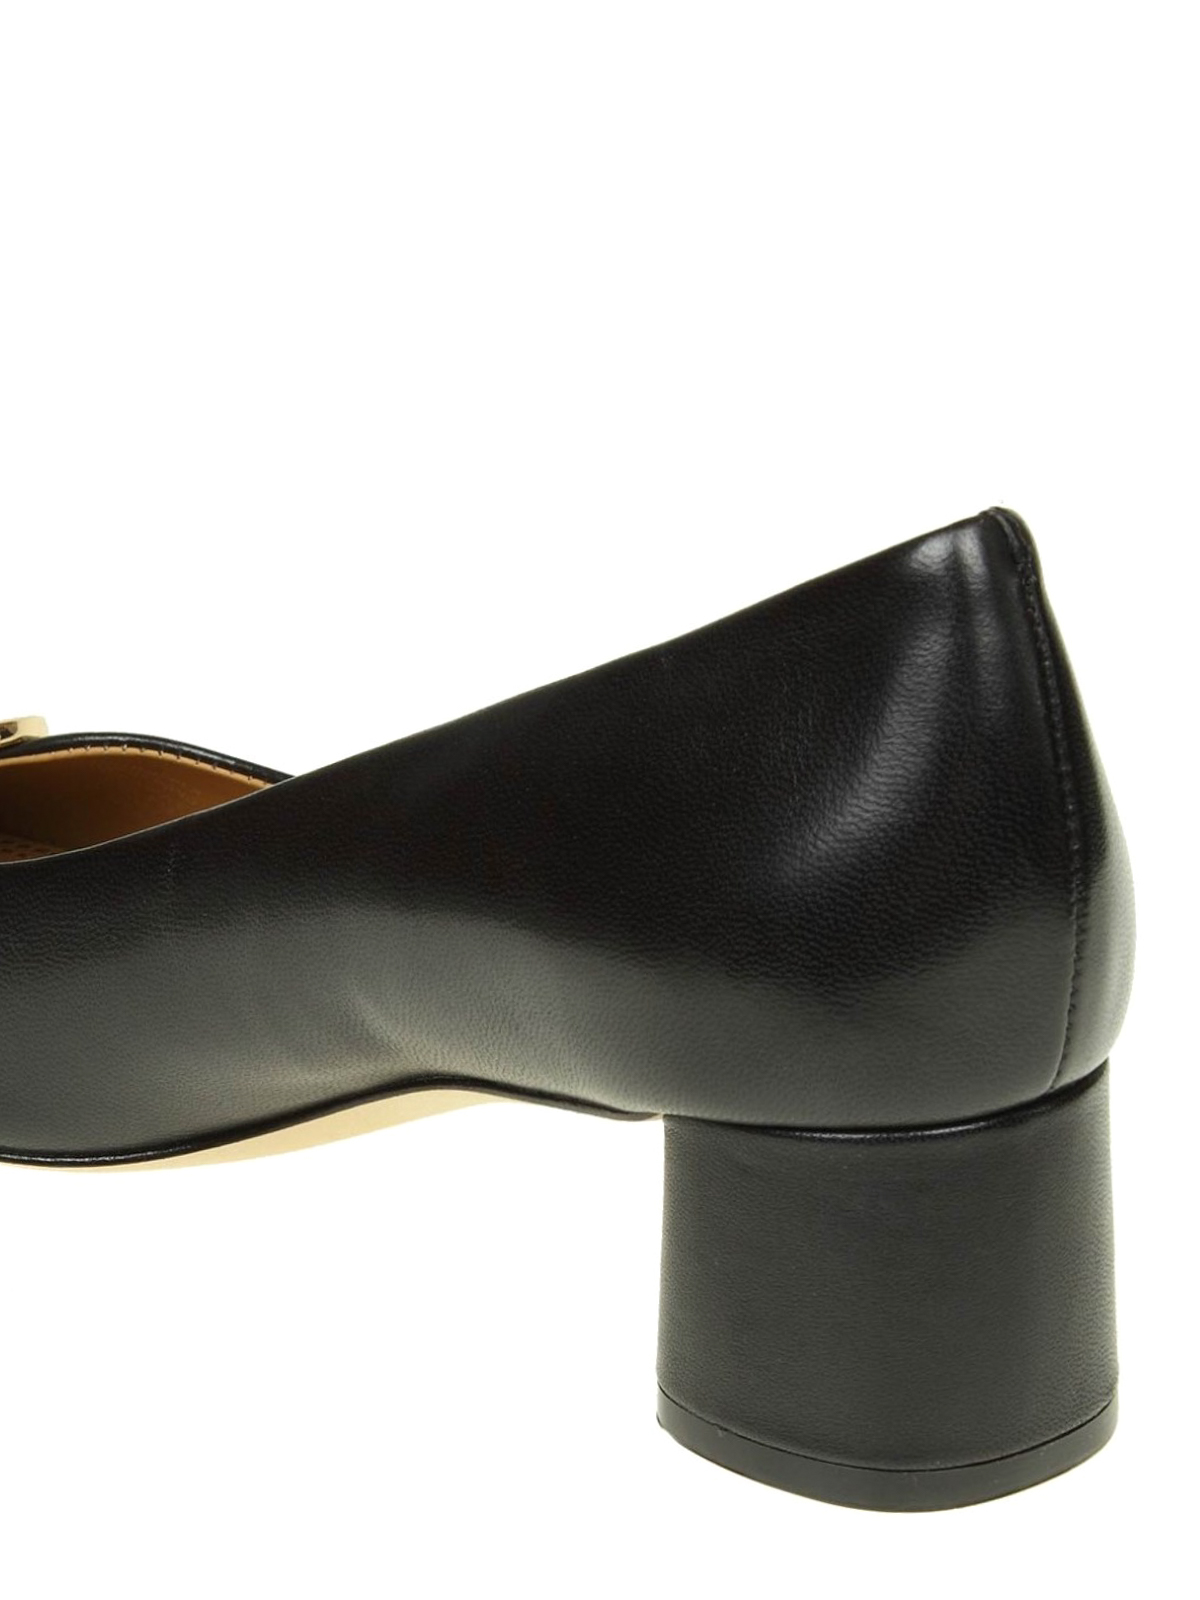 0c7130731947 Tory Burch - Caterina logo detailed leather pumps - court shoes ...